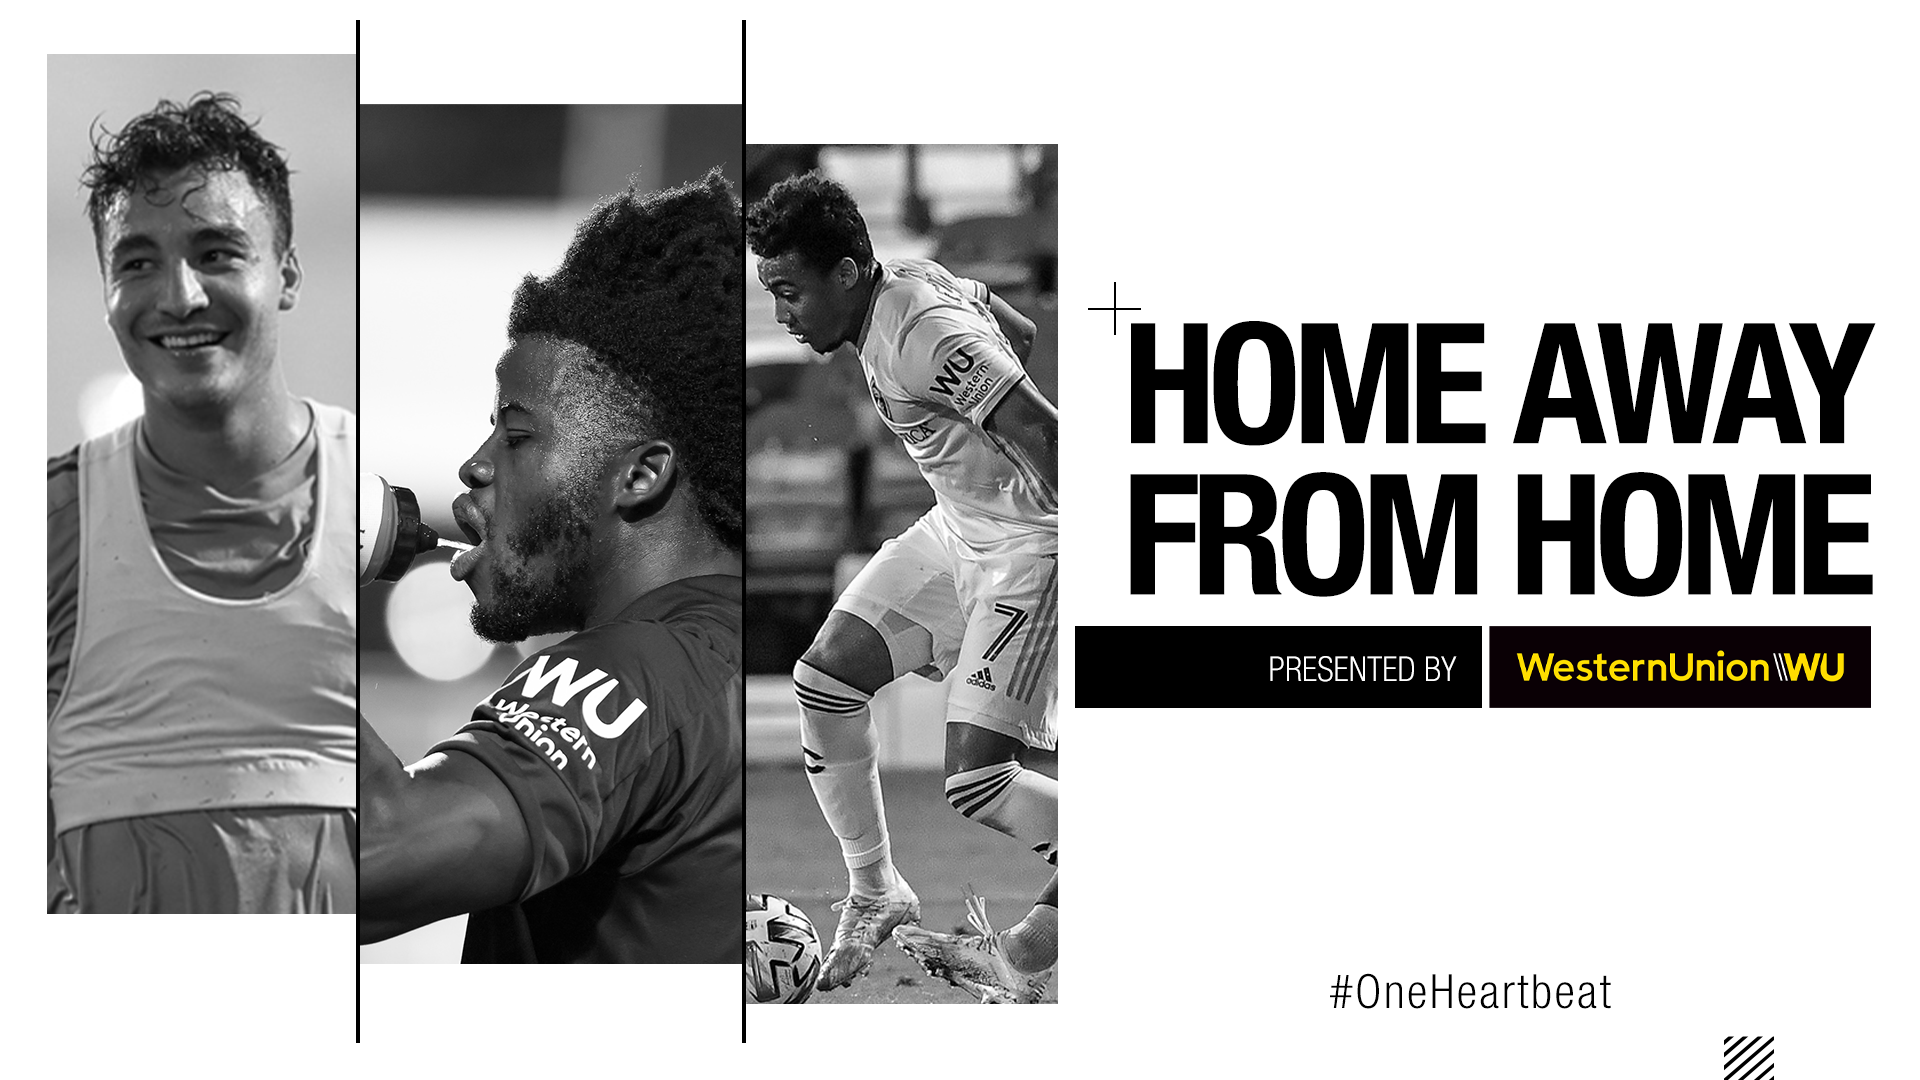 Home Away From Home presented by Western Union 8